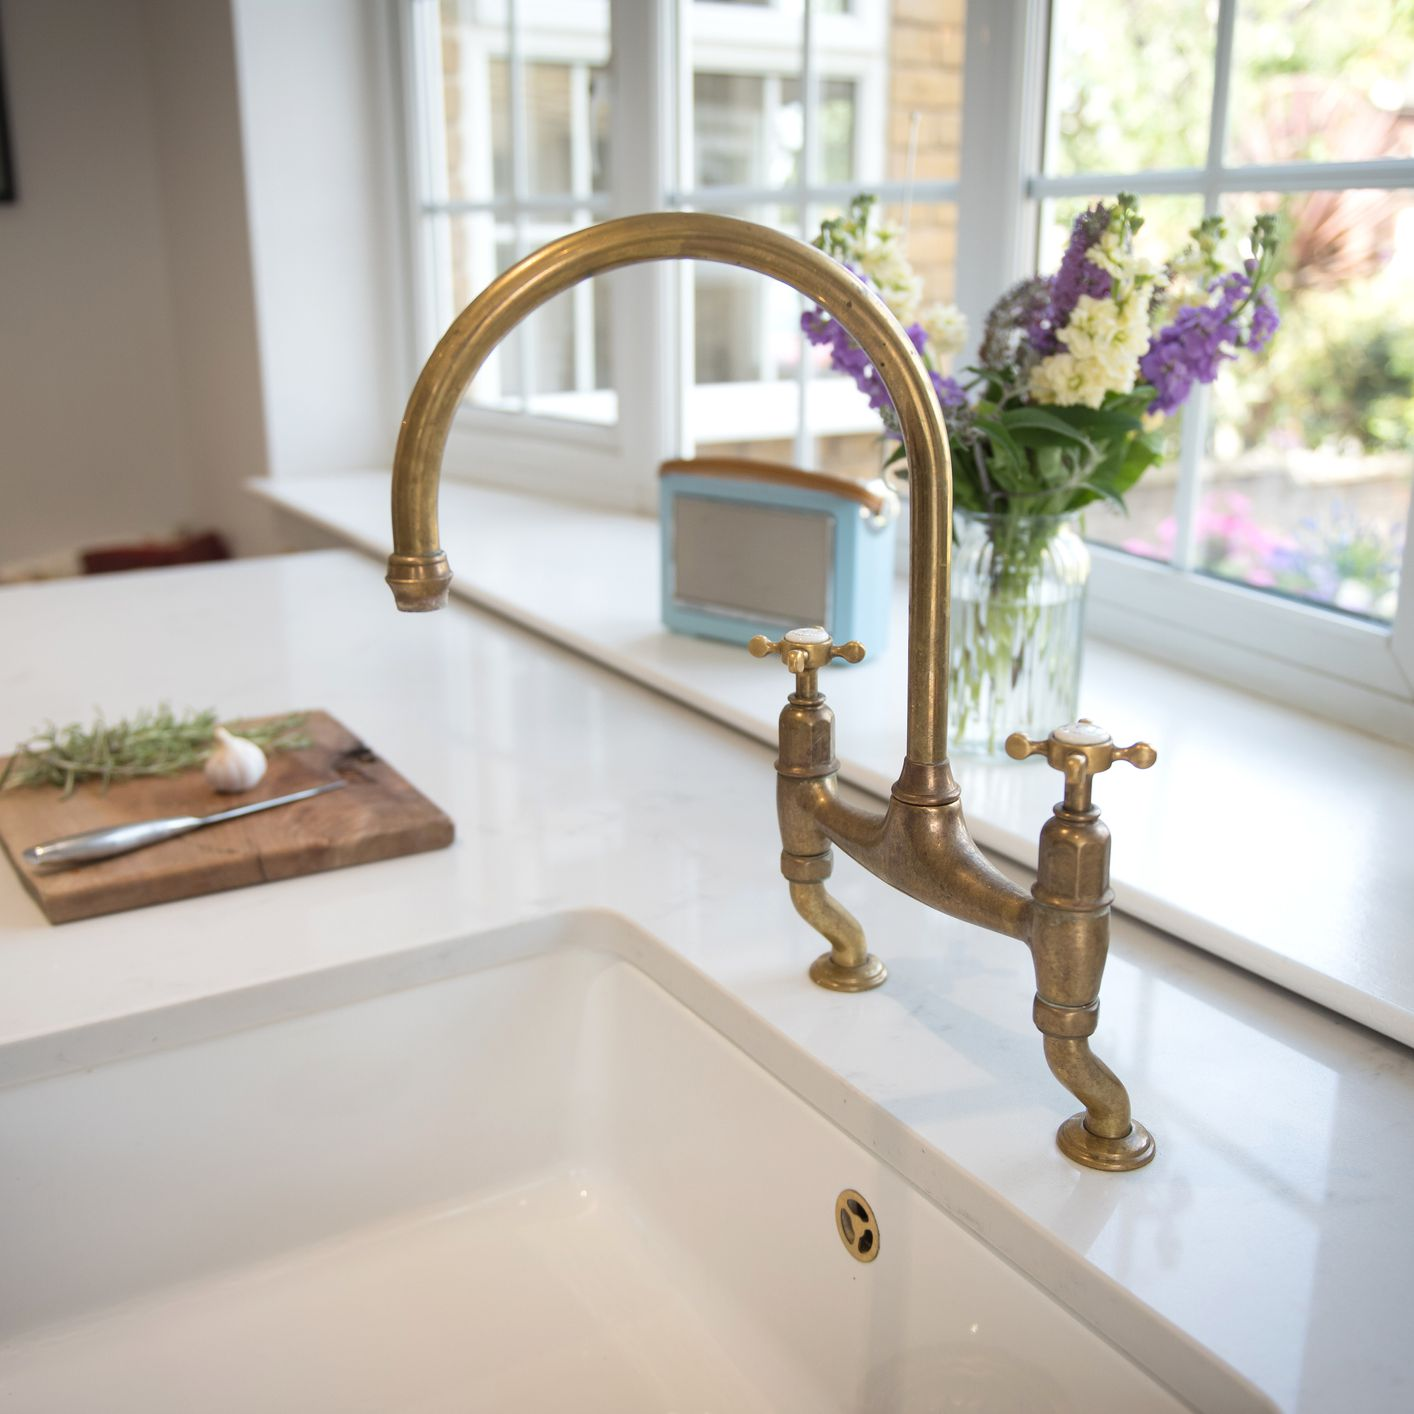 How To Clean Brass Naturally